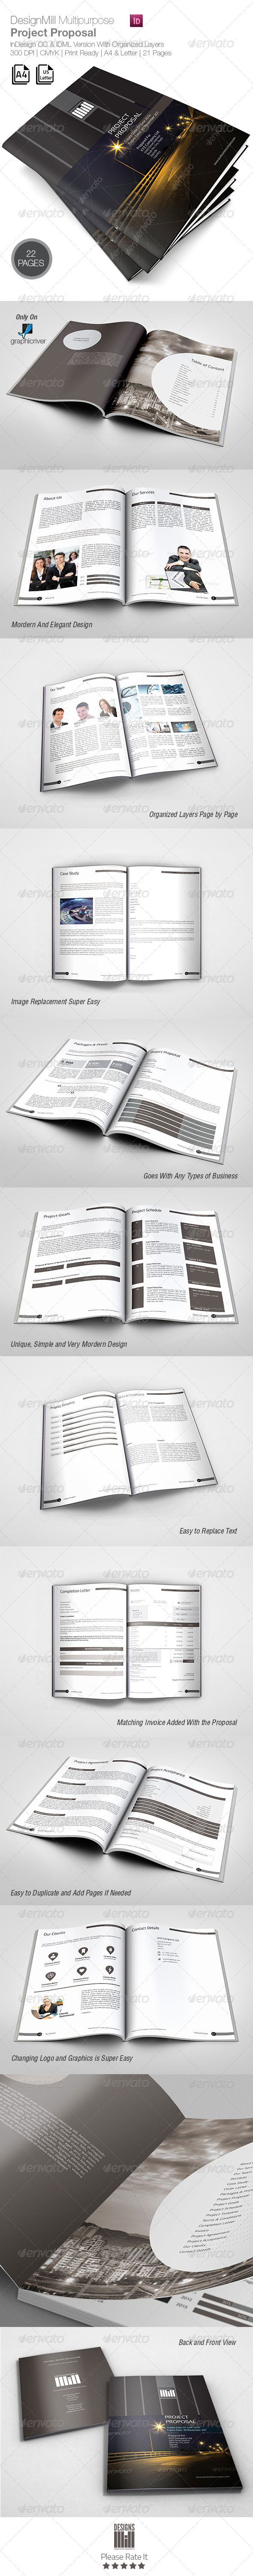 GraphicRiver DesignsMill Multipurpose Proposal 8412186